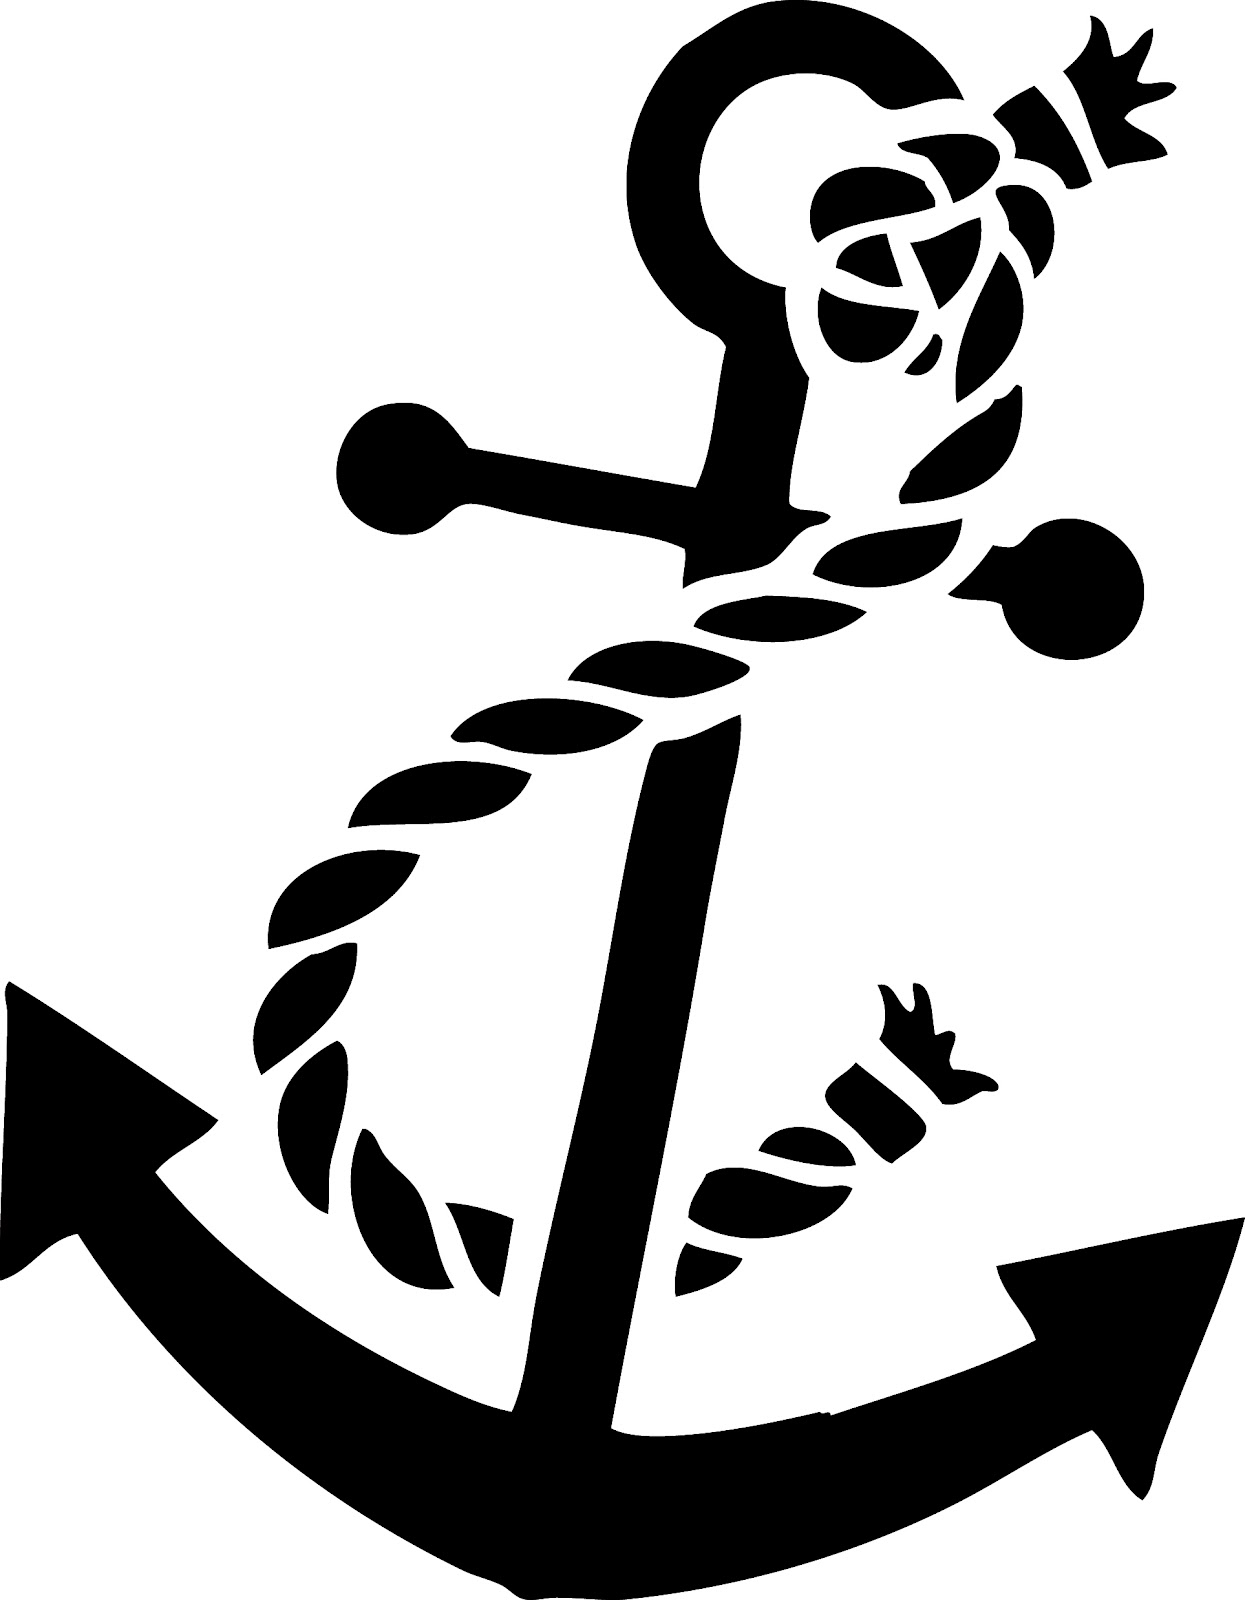 Marine Emblem Clip Art - Cliparts.co